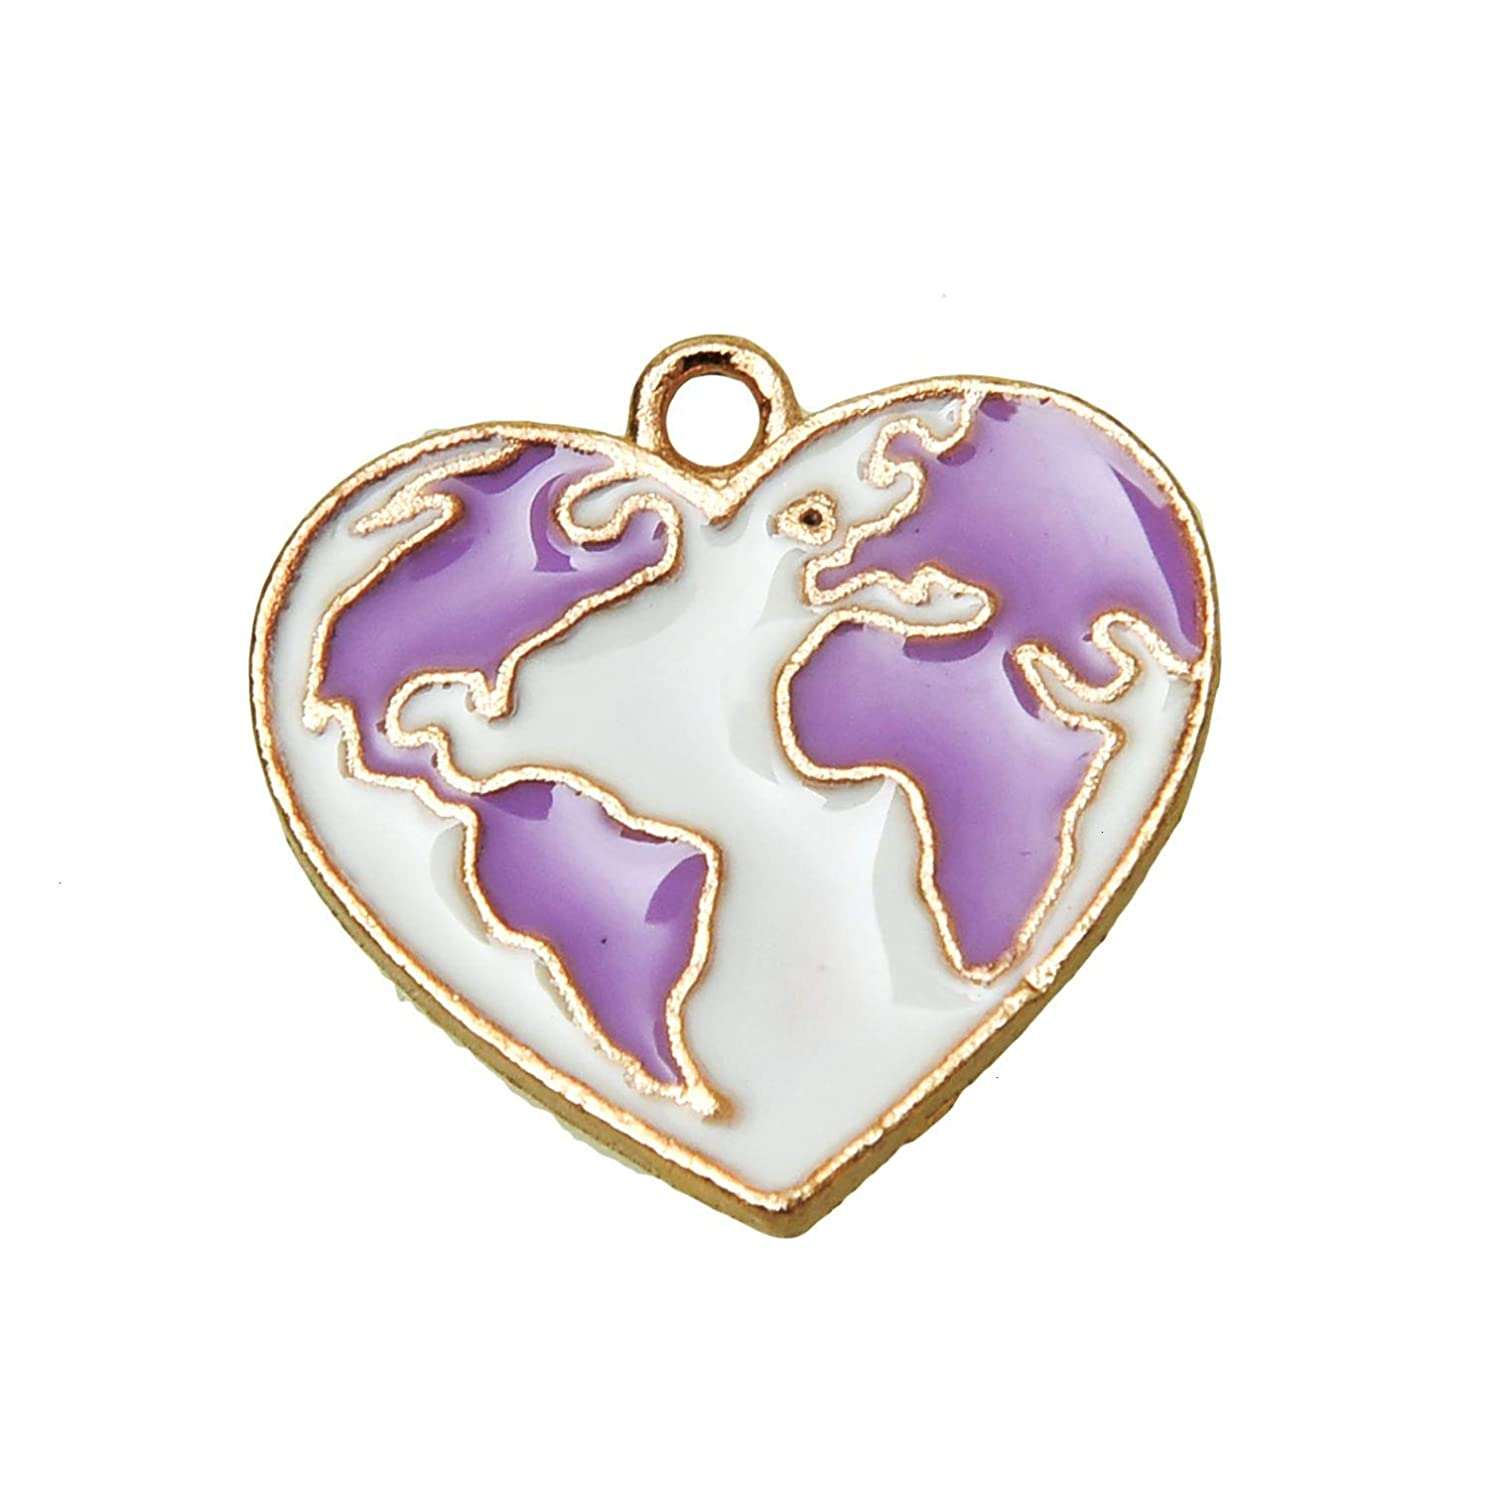 Monrocco 20 Pcs Enamel Heart World Map Charms Pendant for Bracelets Jewelry Making